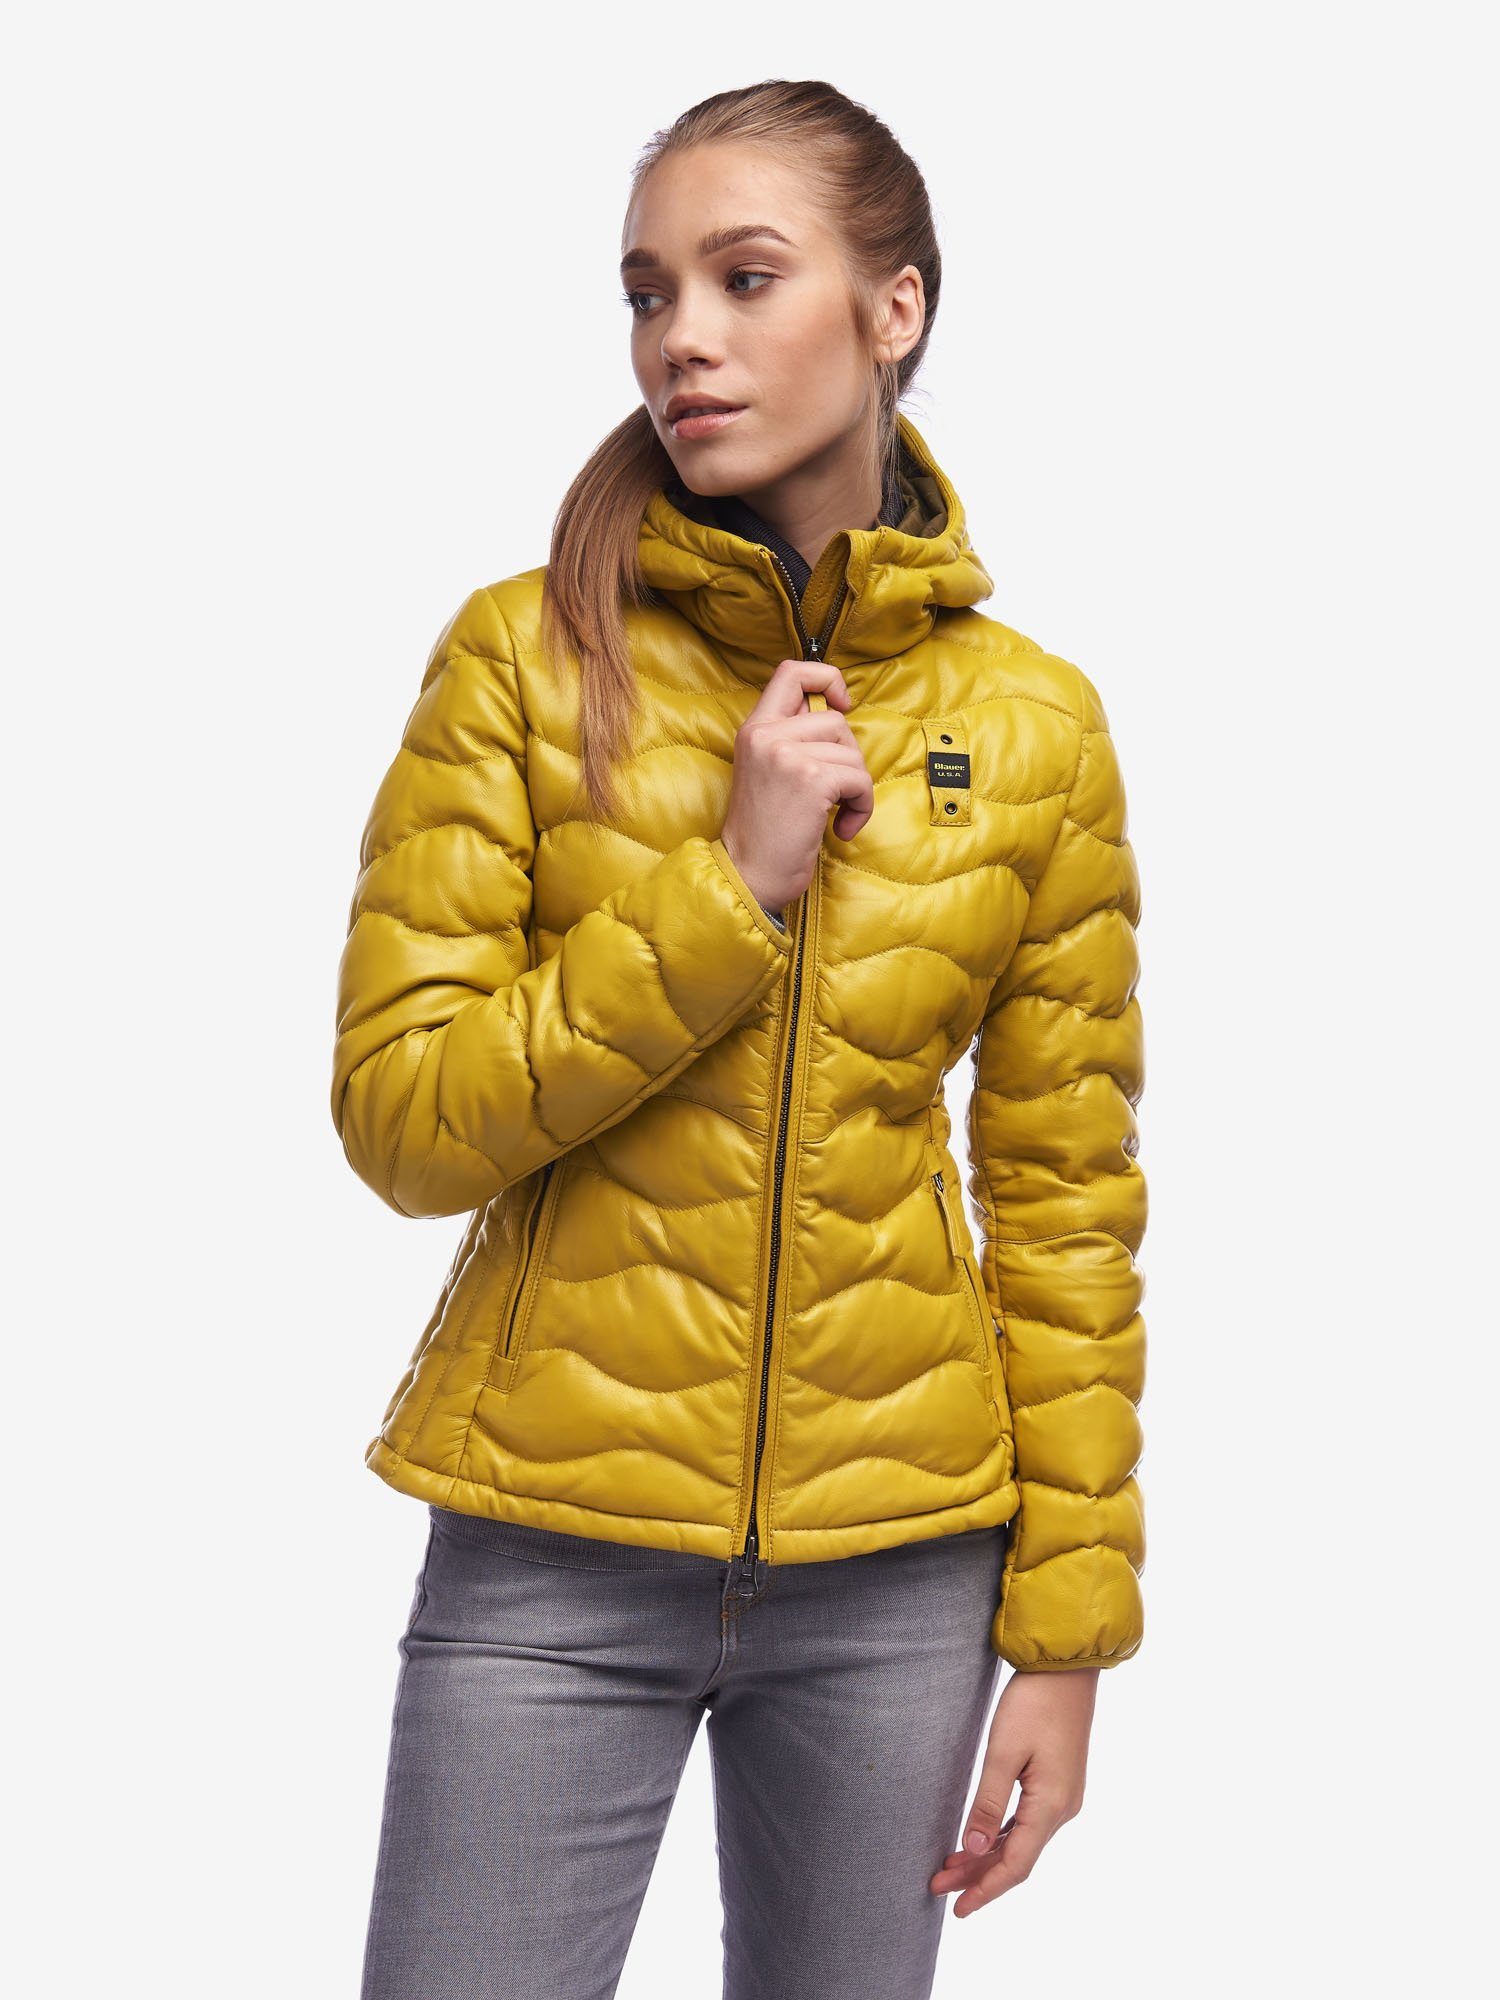 DAVIES WOMEN'S JACKET IN COLOURED LEATHER - Blauer